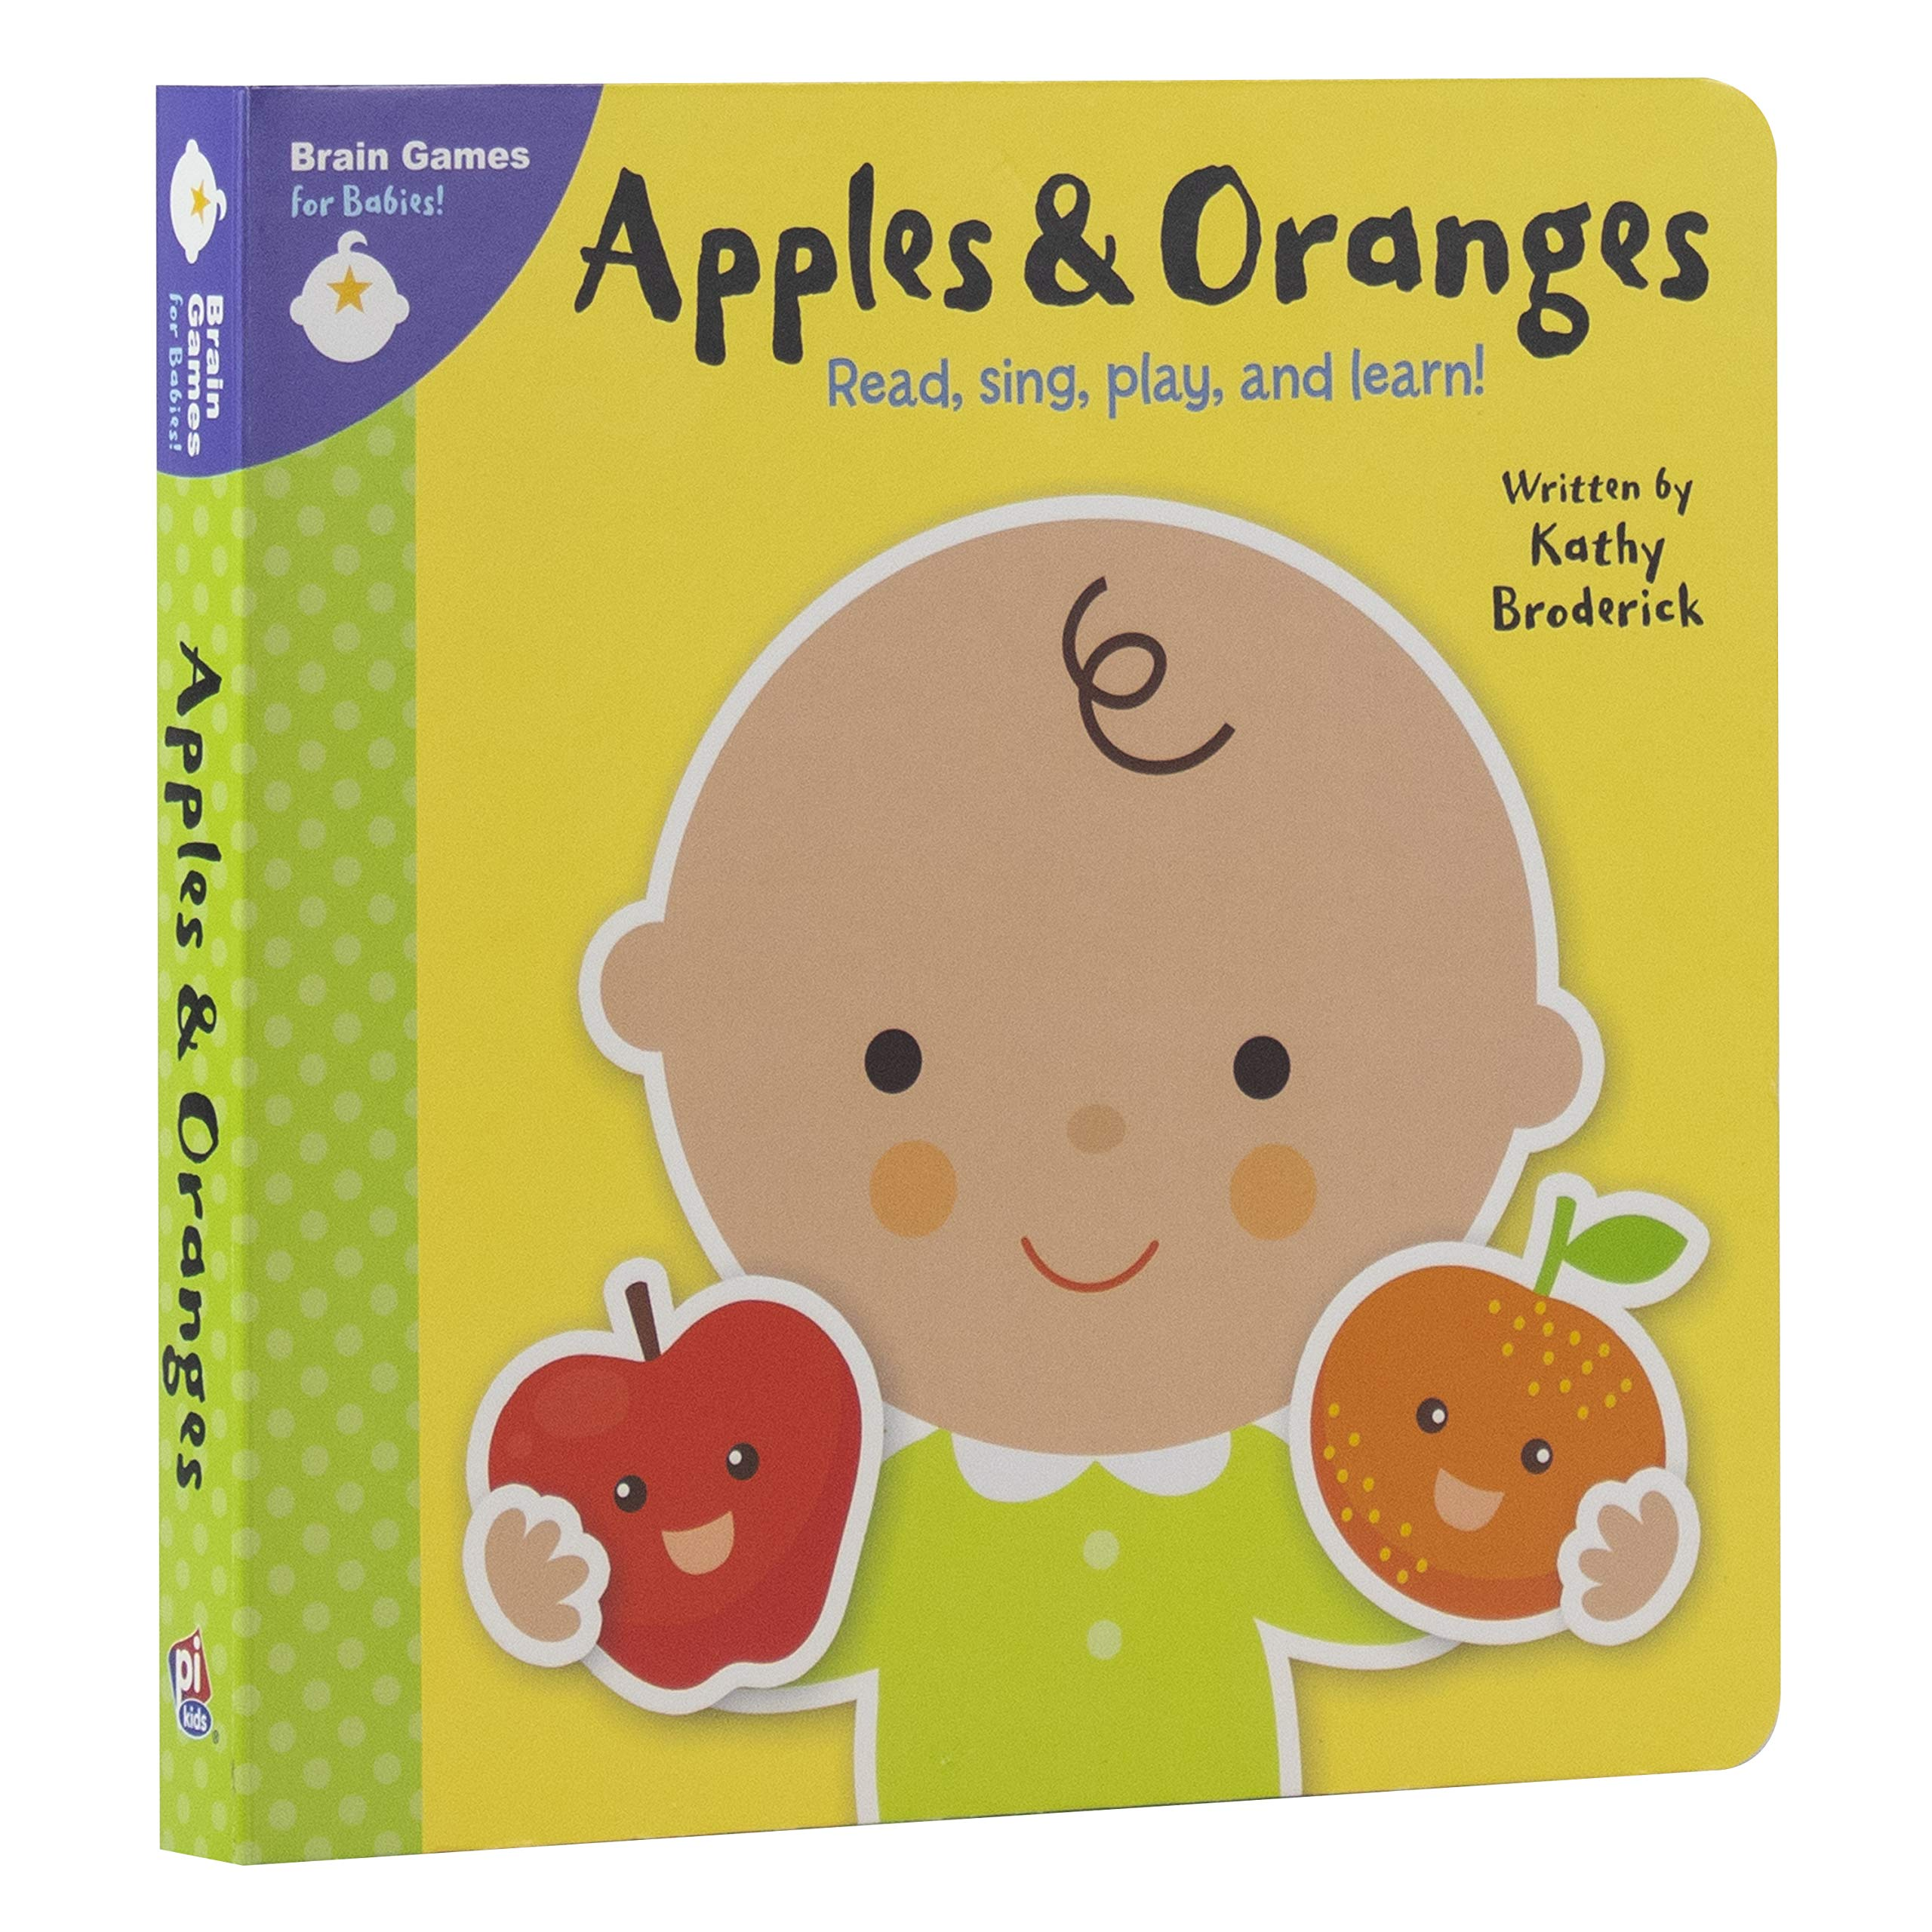 Brain Games for Babies - Apples & Oranges, Sing, Play and Learn